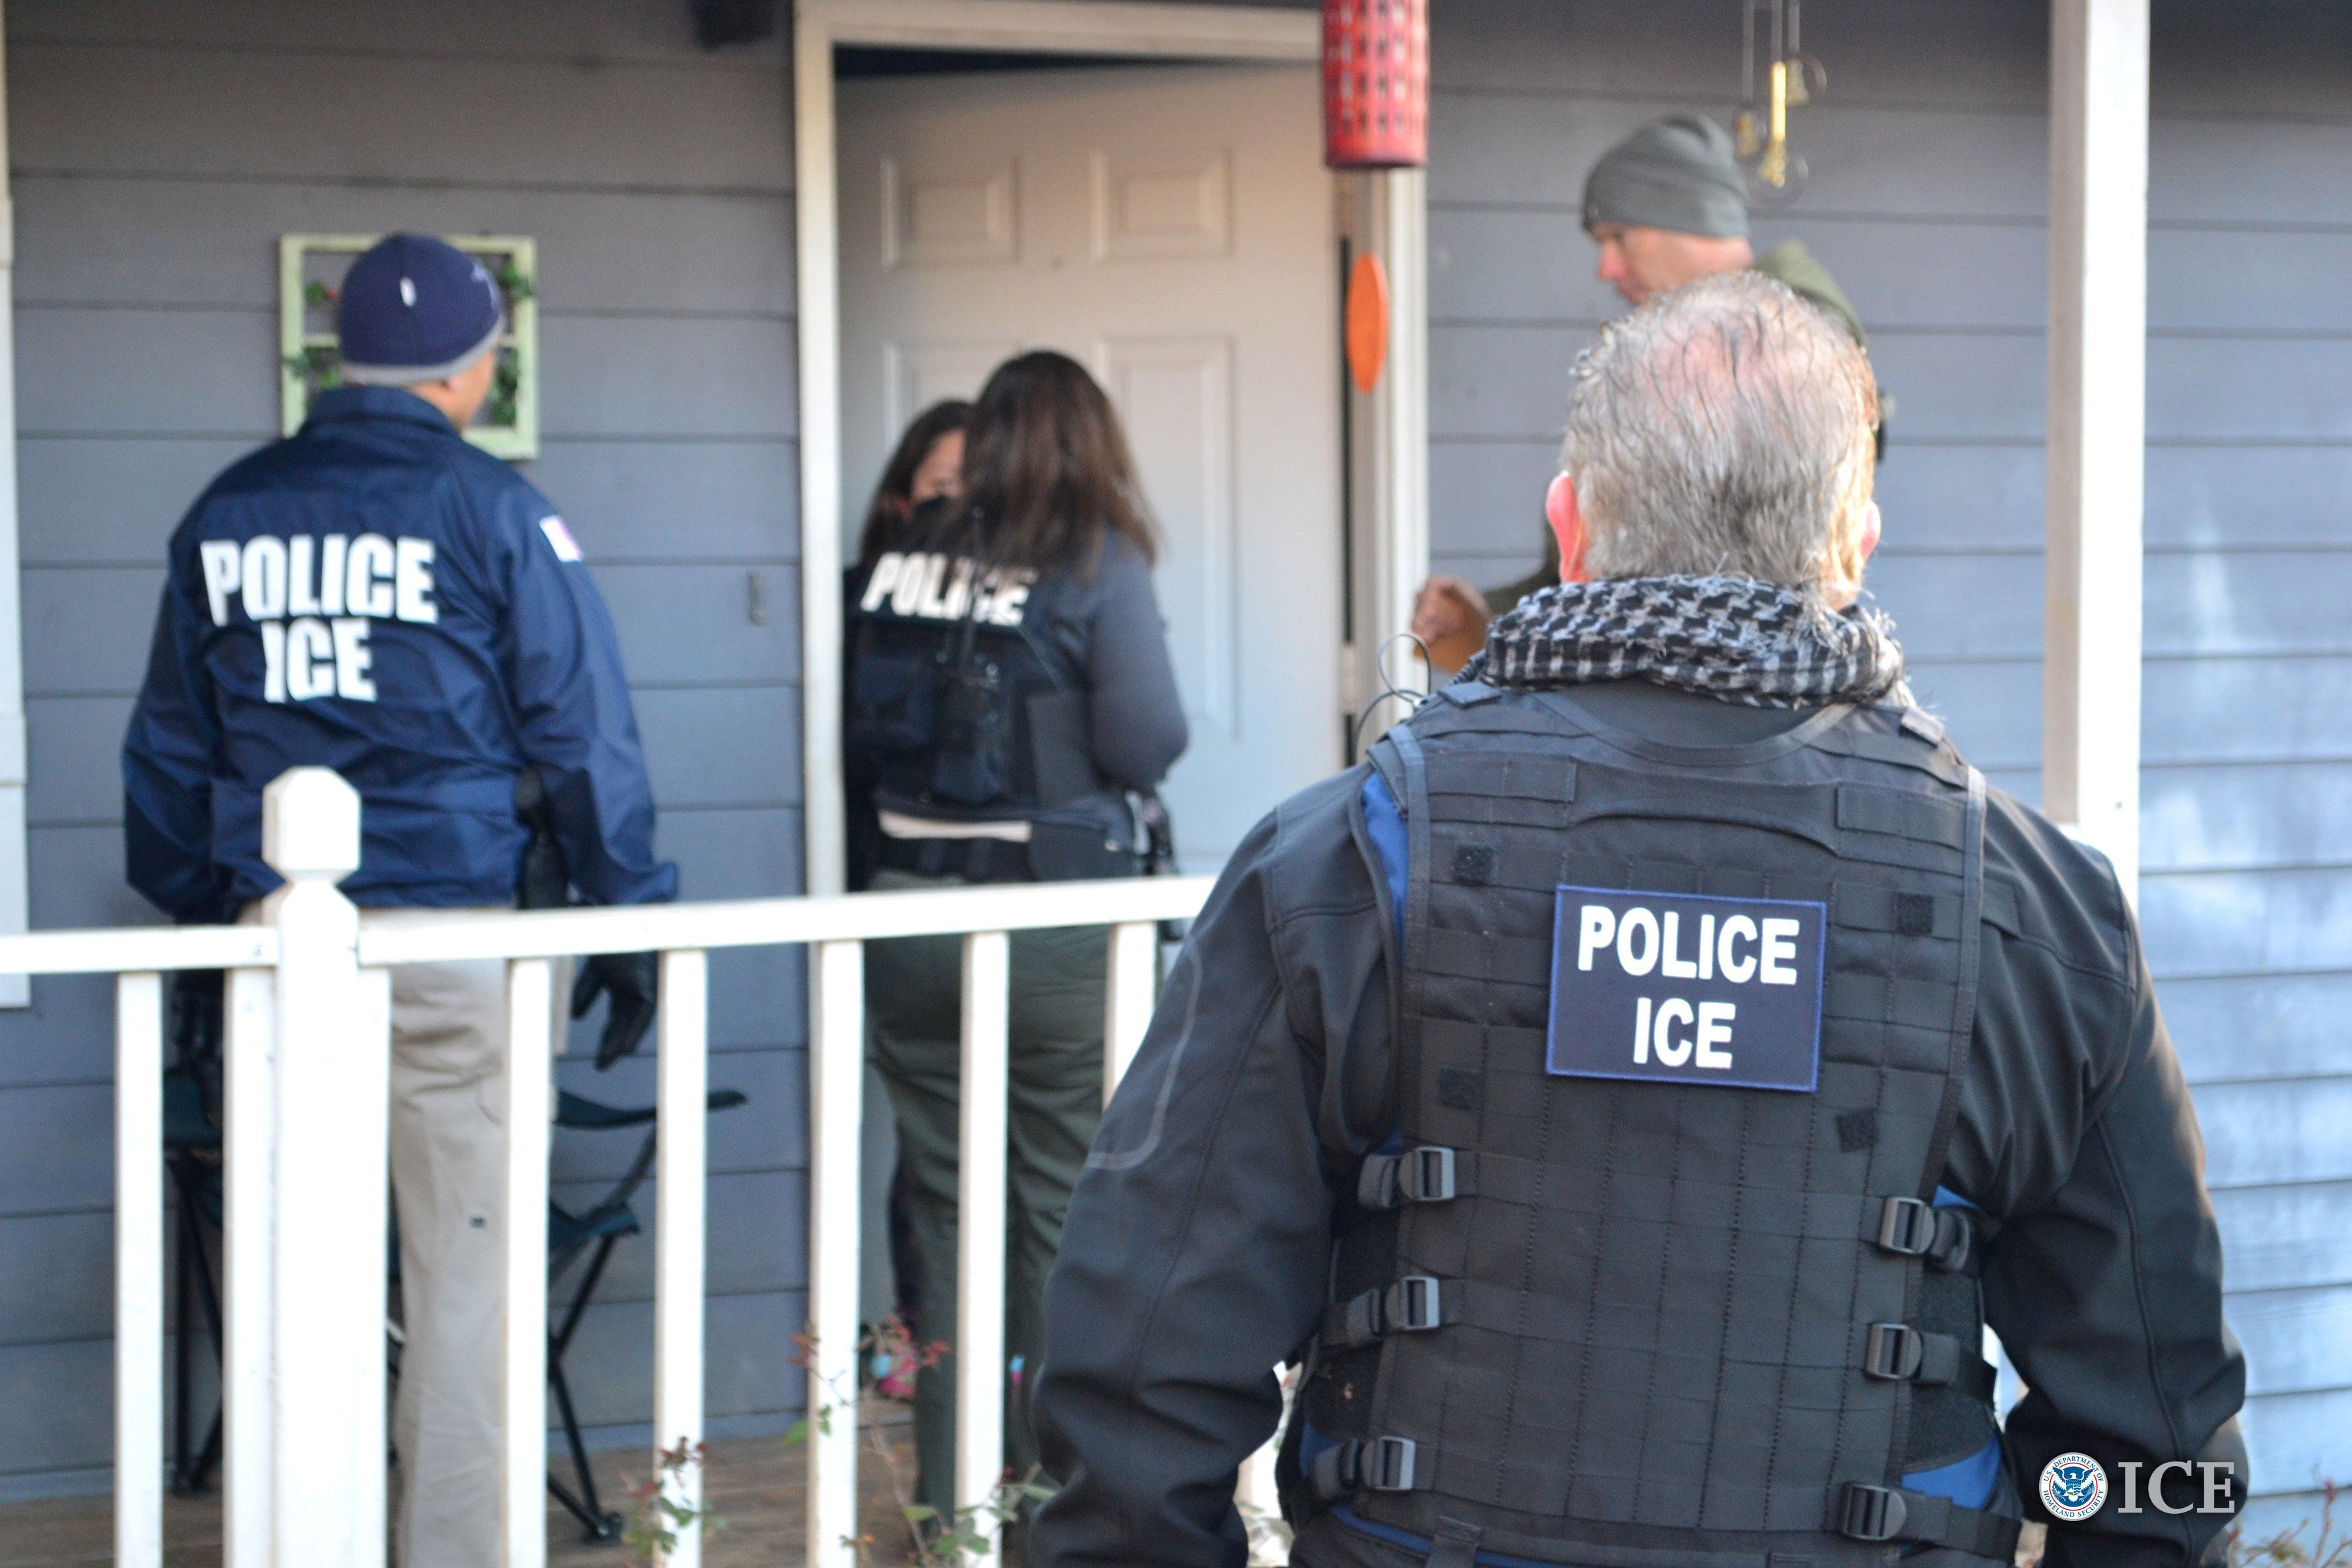 Immigration and Customs Enforcement officers conducting an operation last year. The circumstances surrounding Celestino